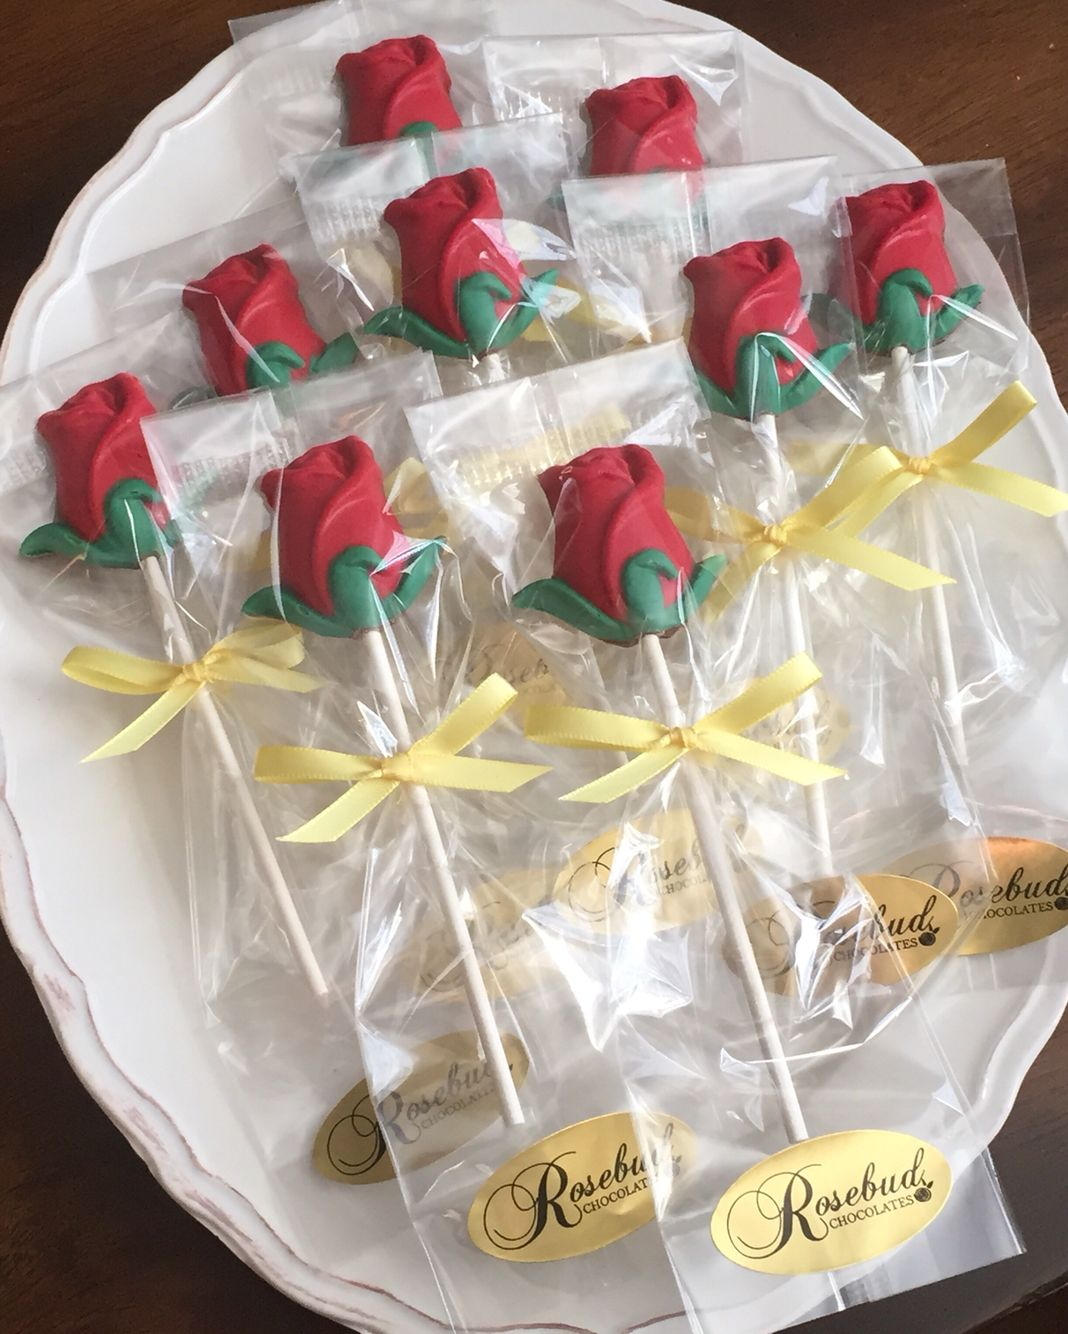 12 roses red milk chocolate lollipop candy party favors in